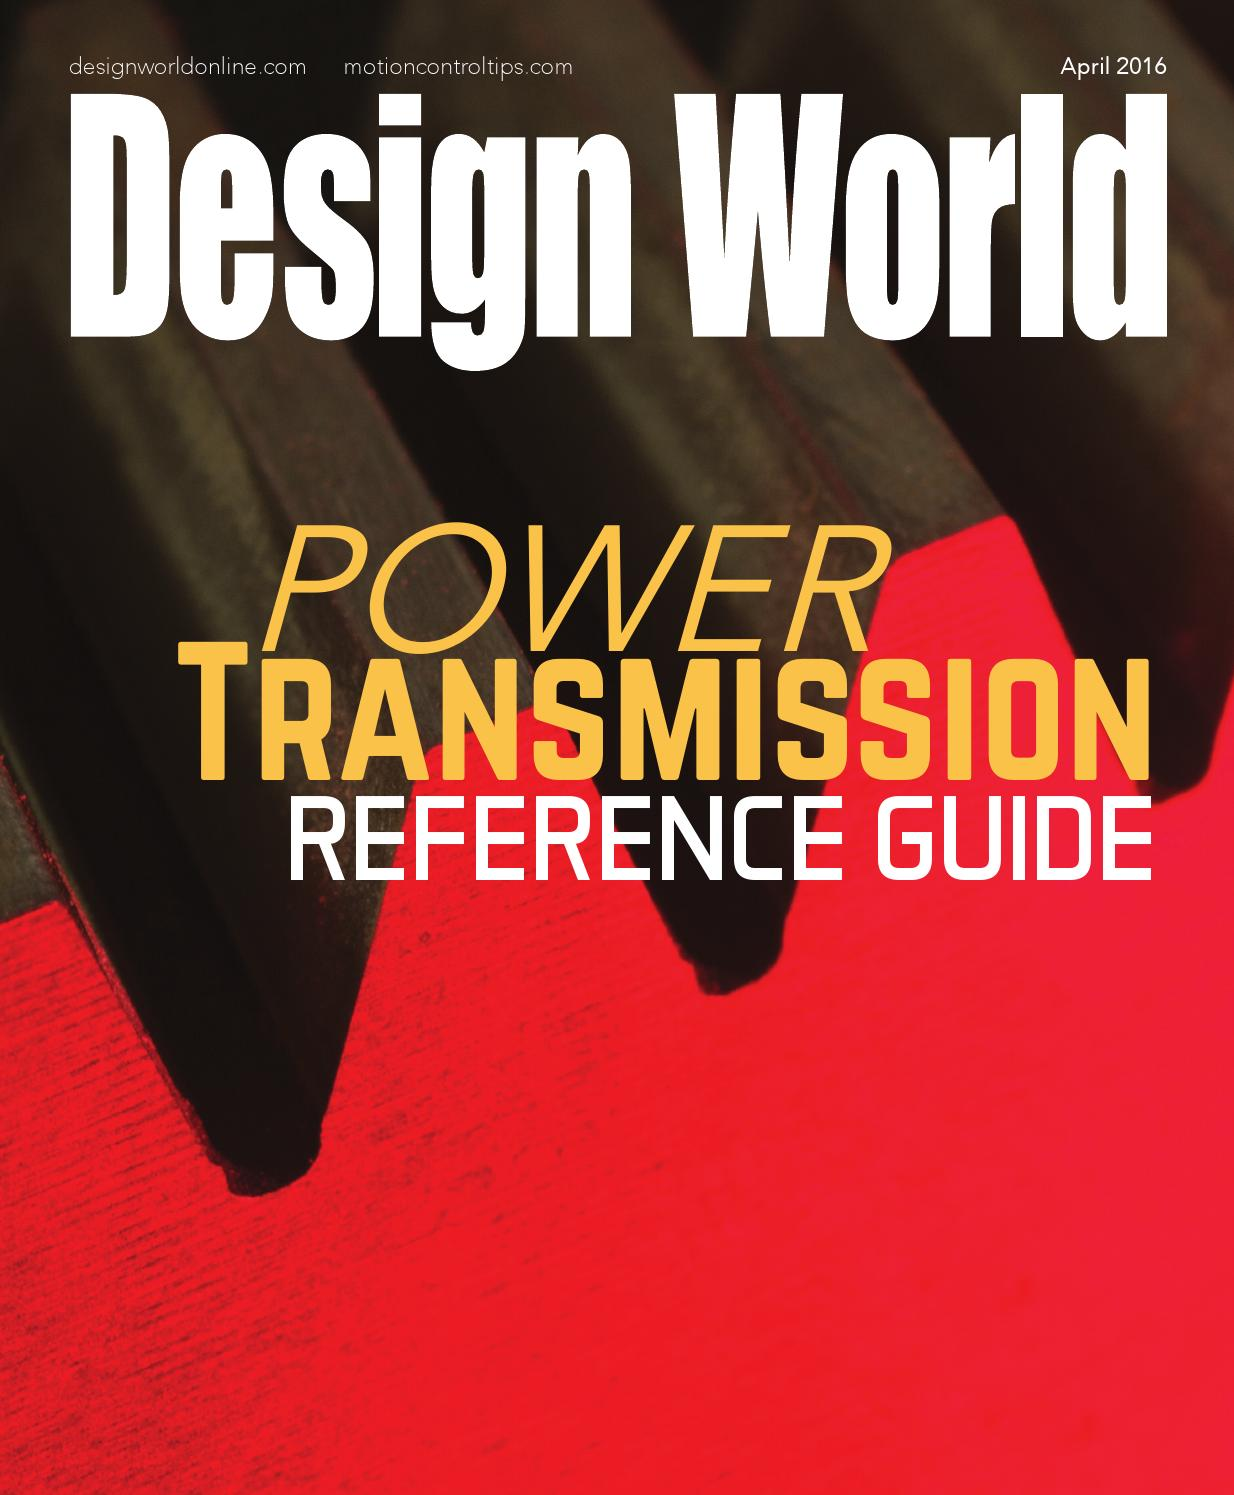 Power Transmission Reference Guide 2016 By Wtwh Media Llc Issuu Dc Motor Brushes Replacement Besides Bodine Wiring Diagram